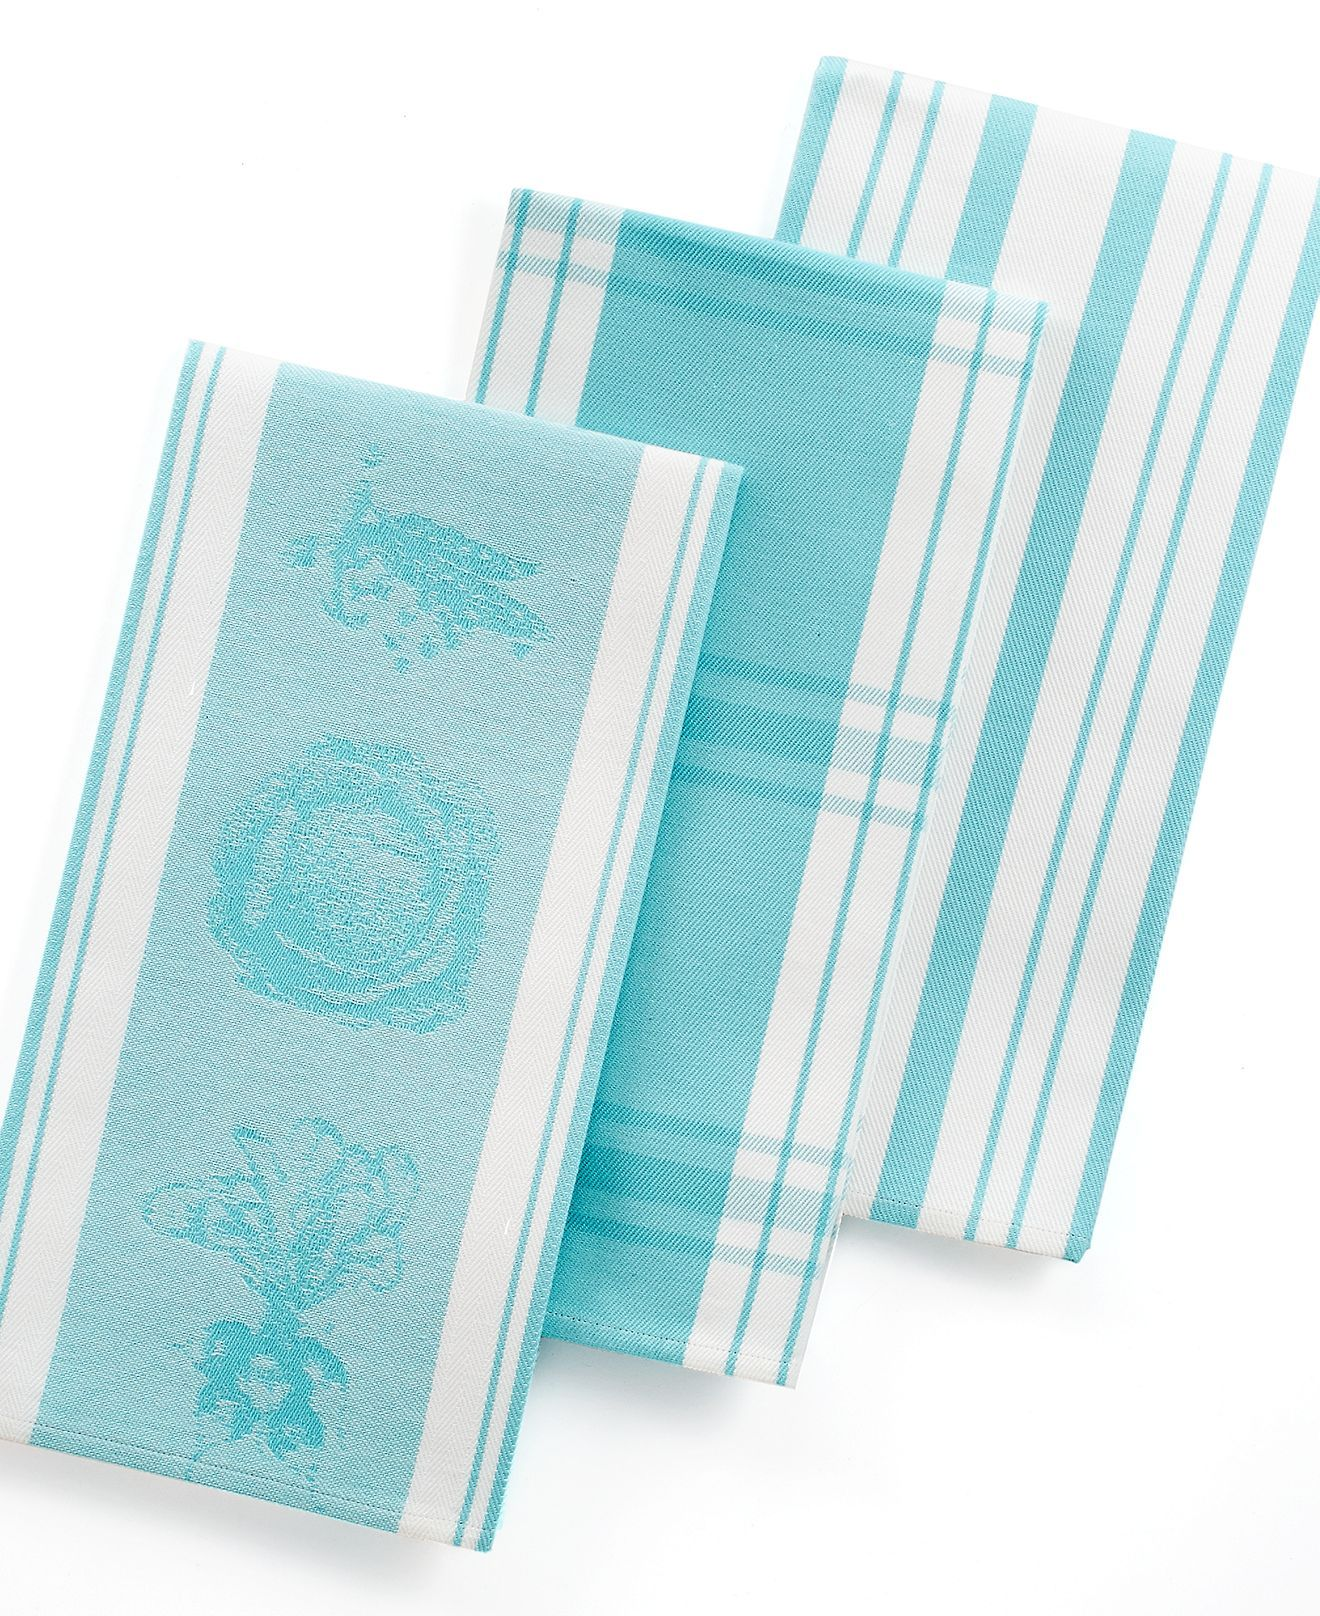 martha stewart collection jacquard set of 3 kitchen towels i